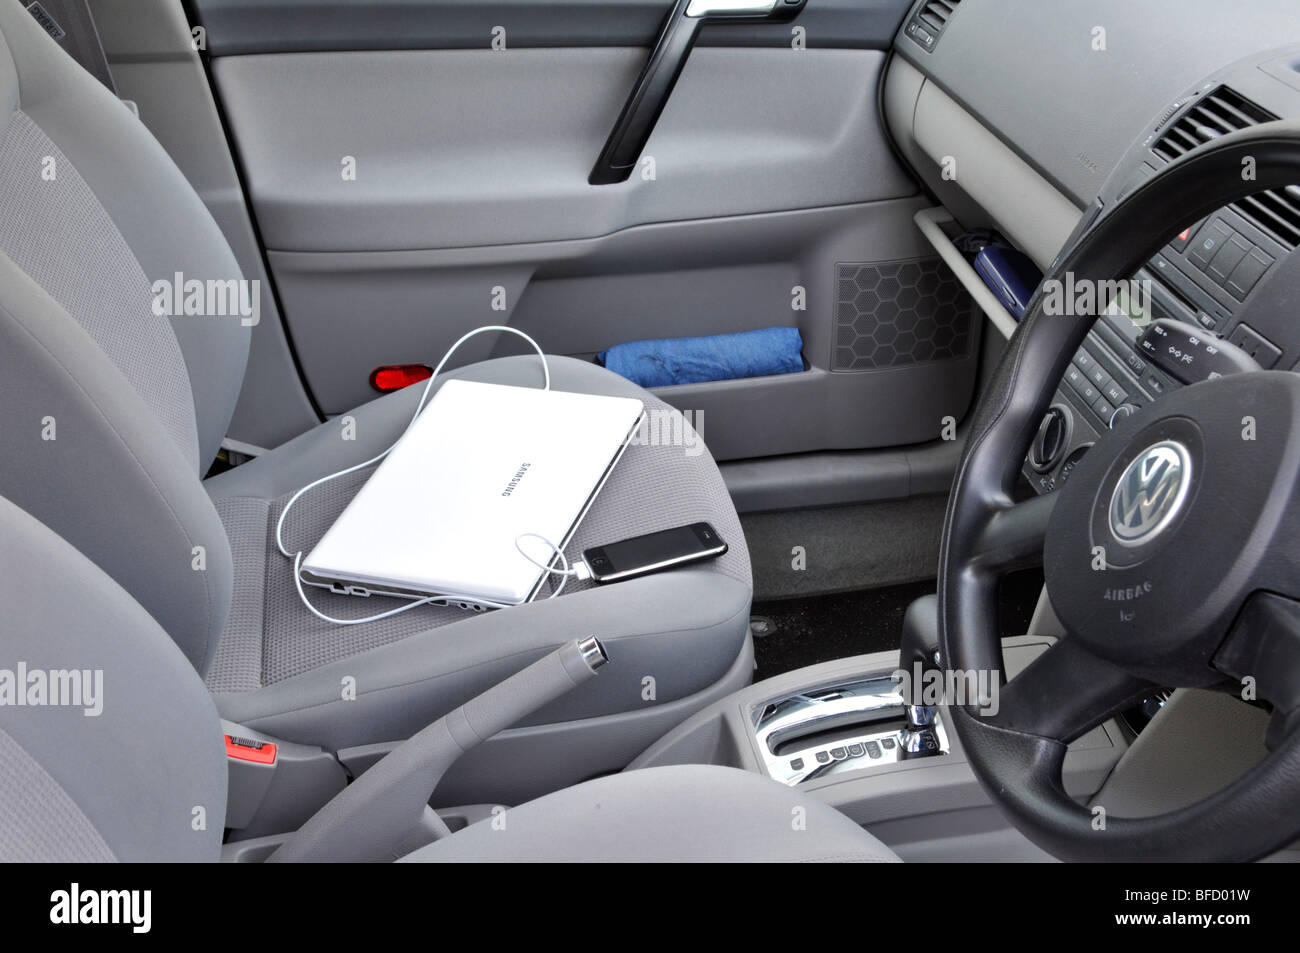 Samsung netbook and connected iphone left on passenger seat inside locked parked car - Stock Image